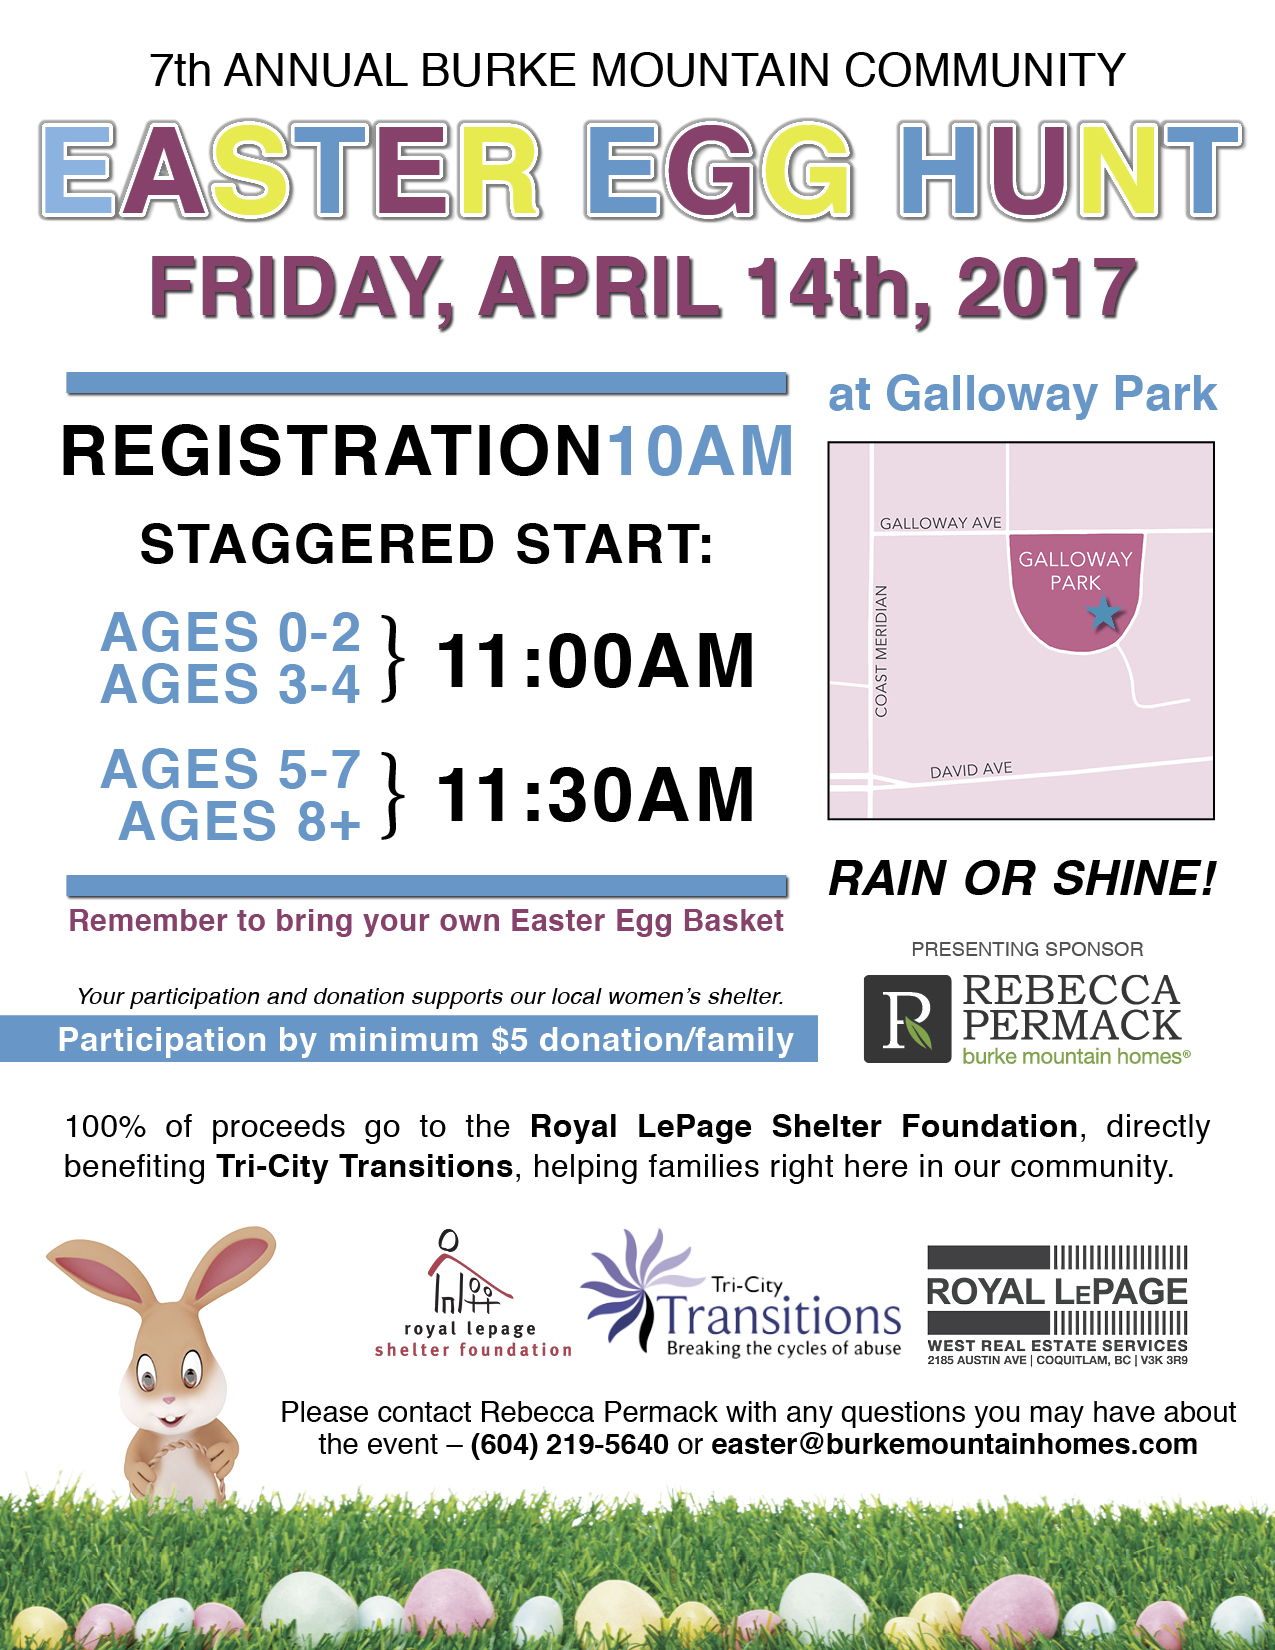 Easter Egg Hunt Flyer - 2017.jpg